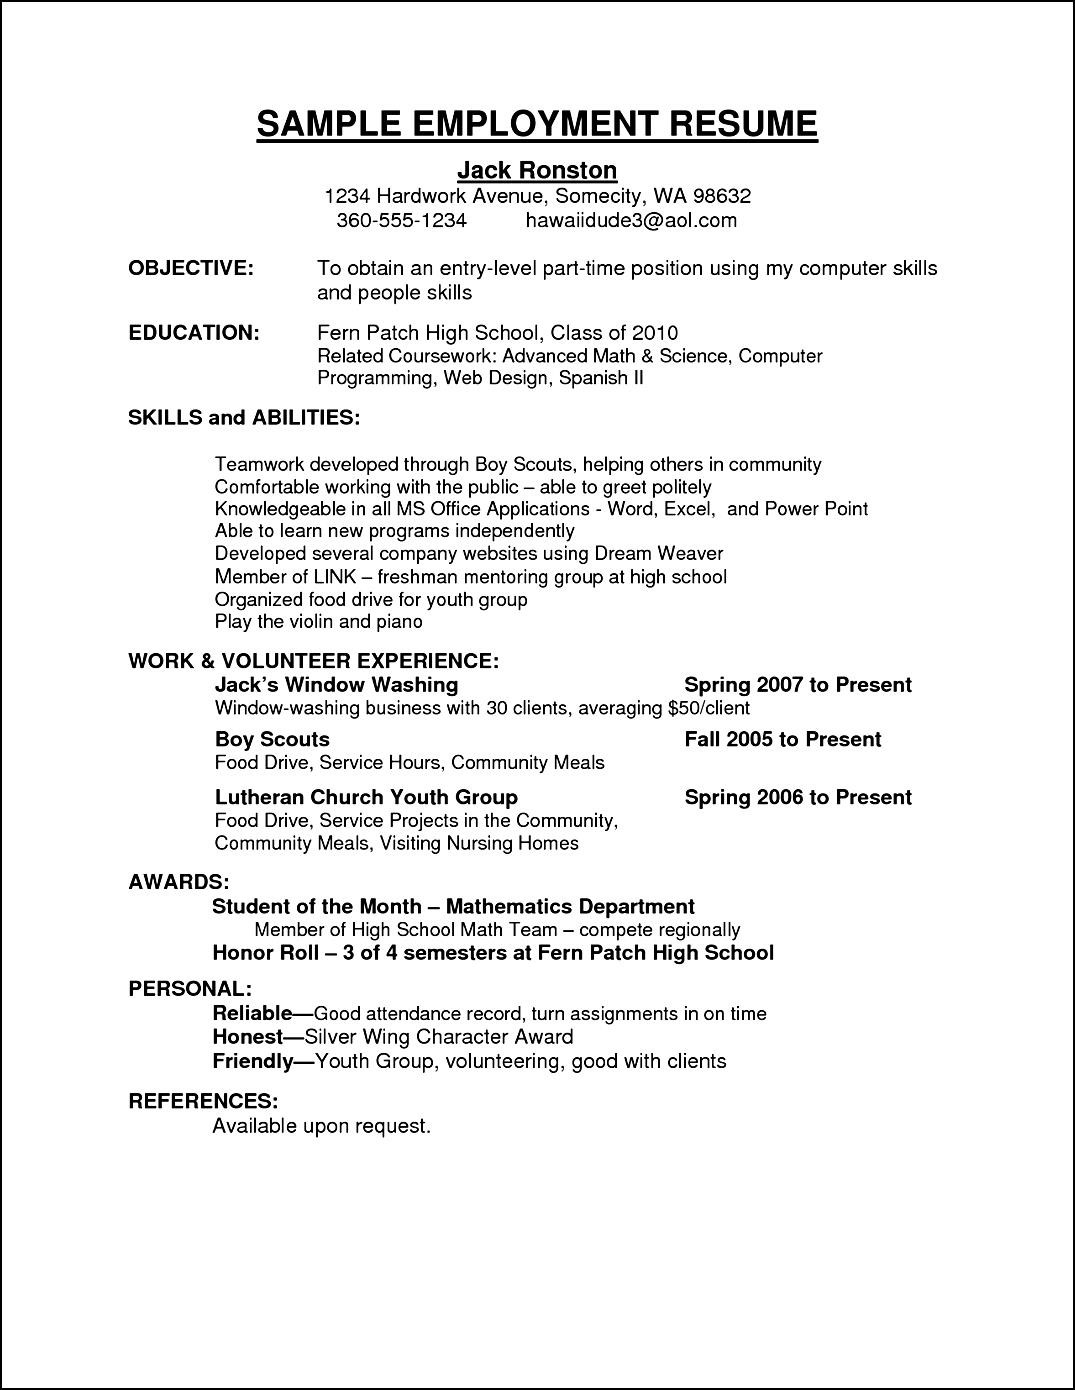 Resume Job Sample Curriculum Vitae For Employment Free Samples